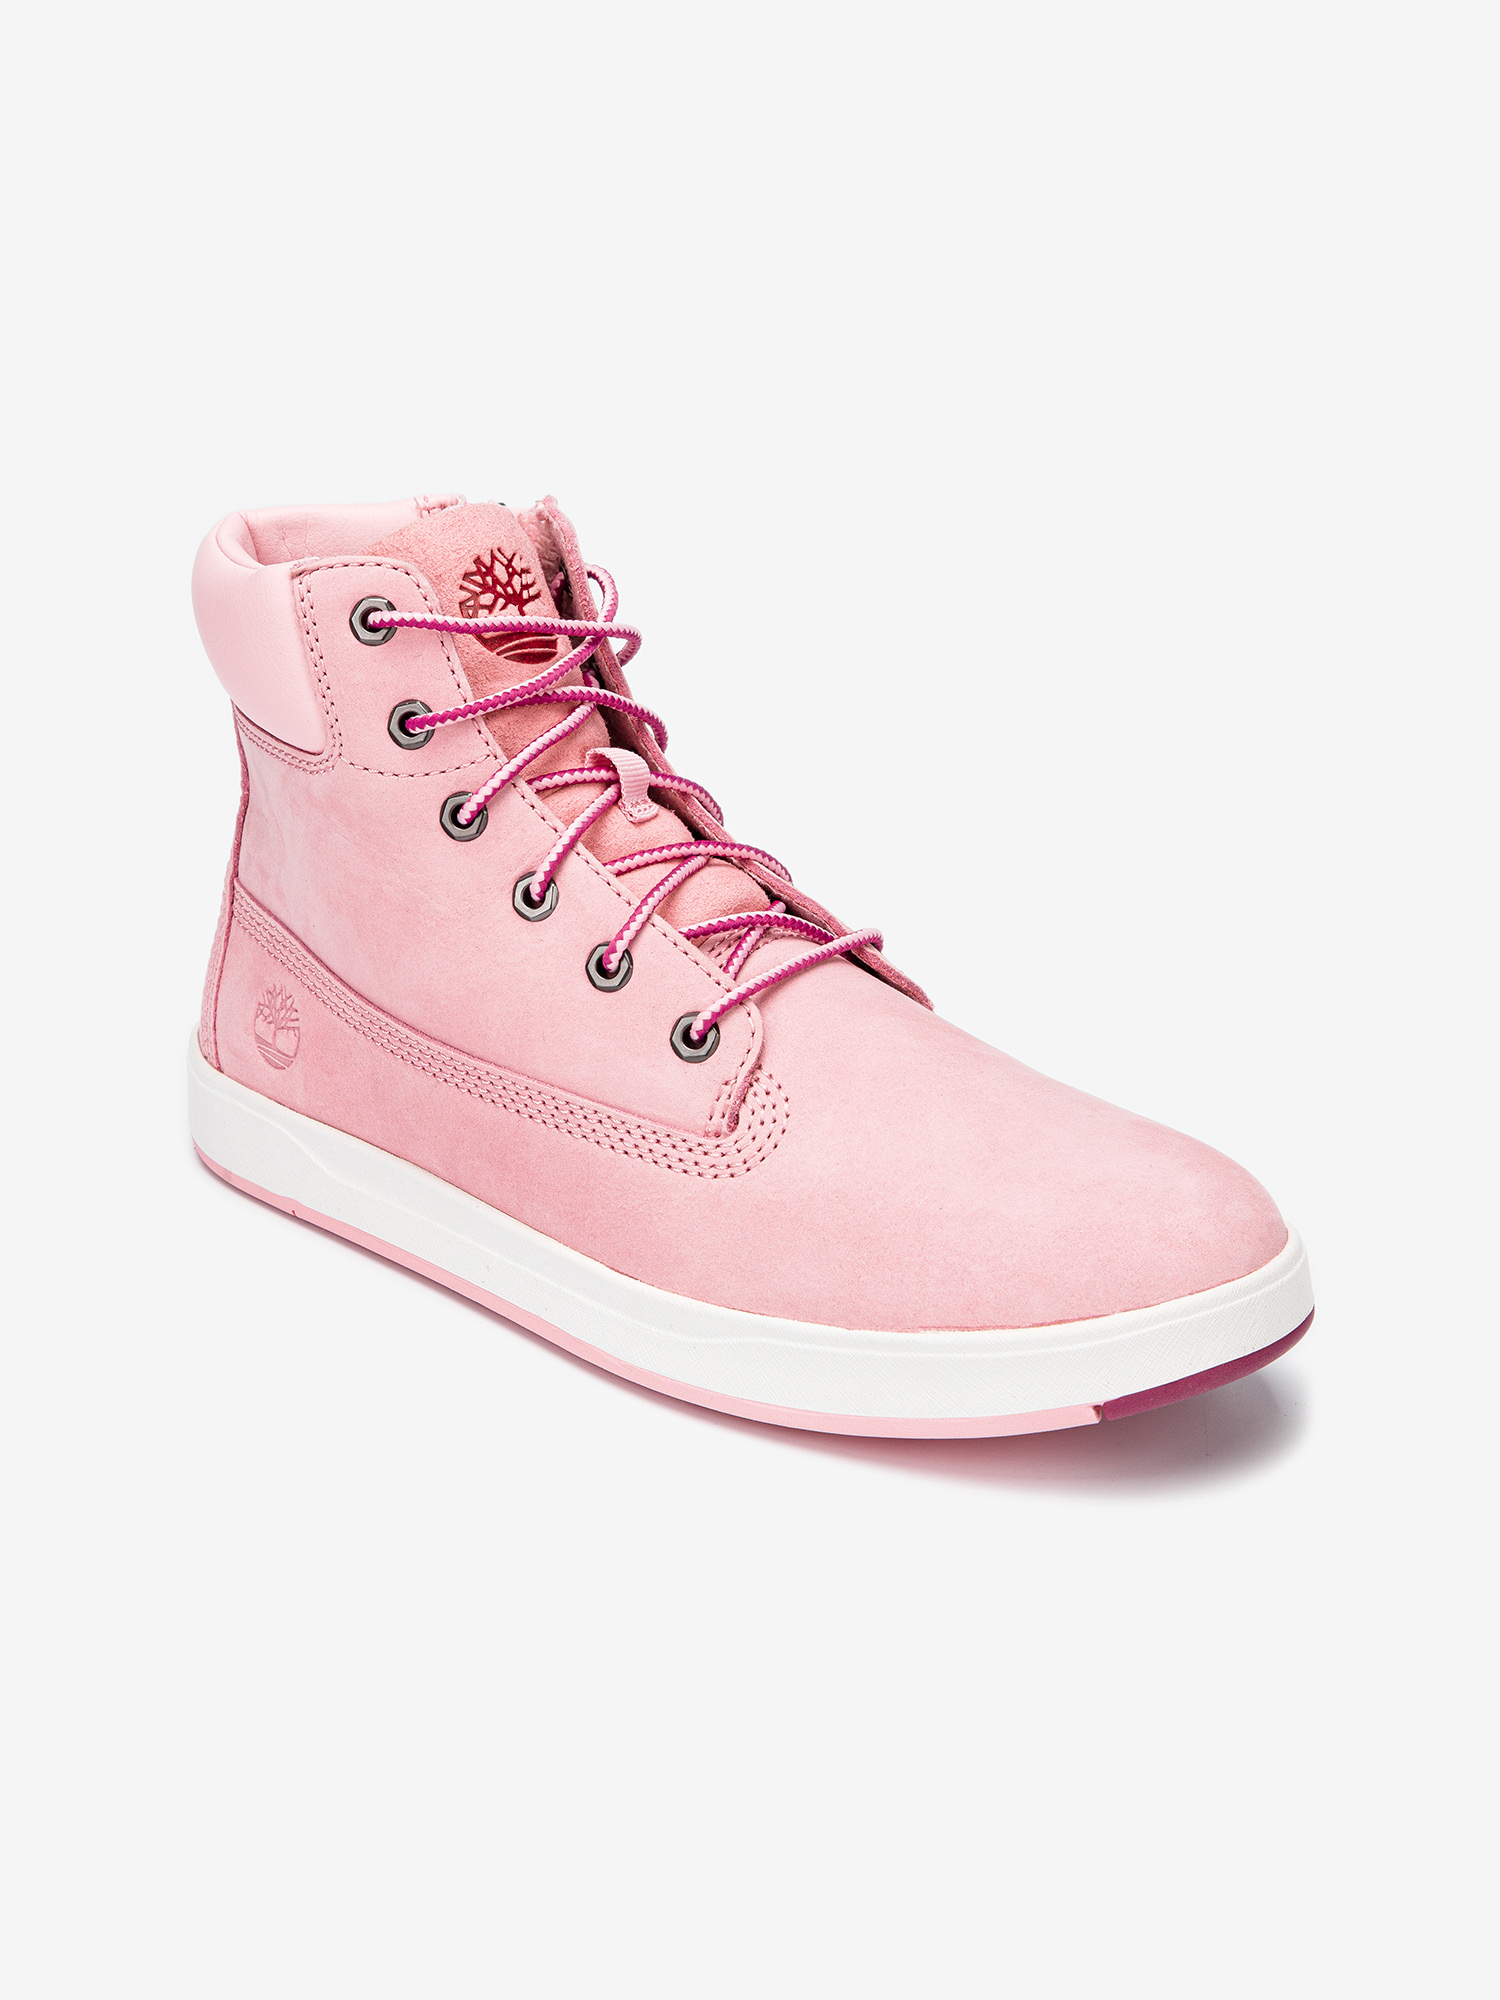 Boty Timberland Davis Square 6 Inch Prism Pink (2)